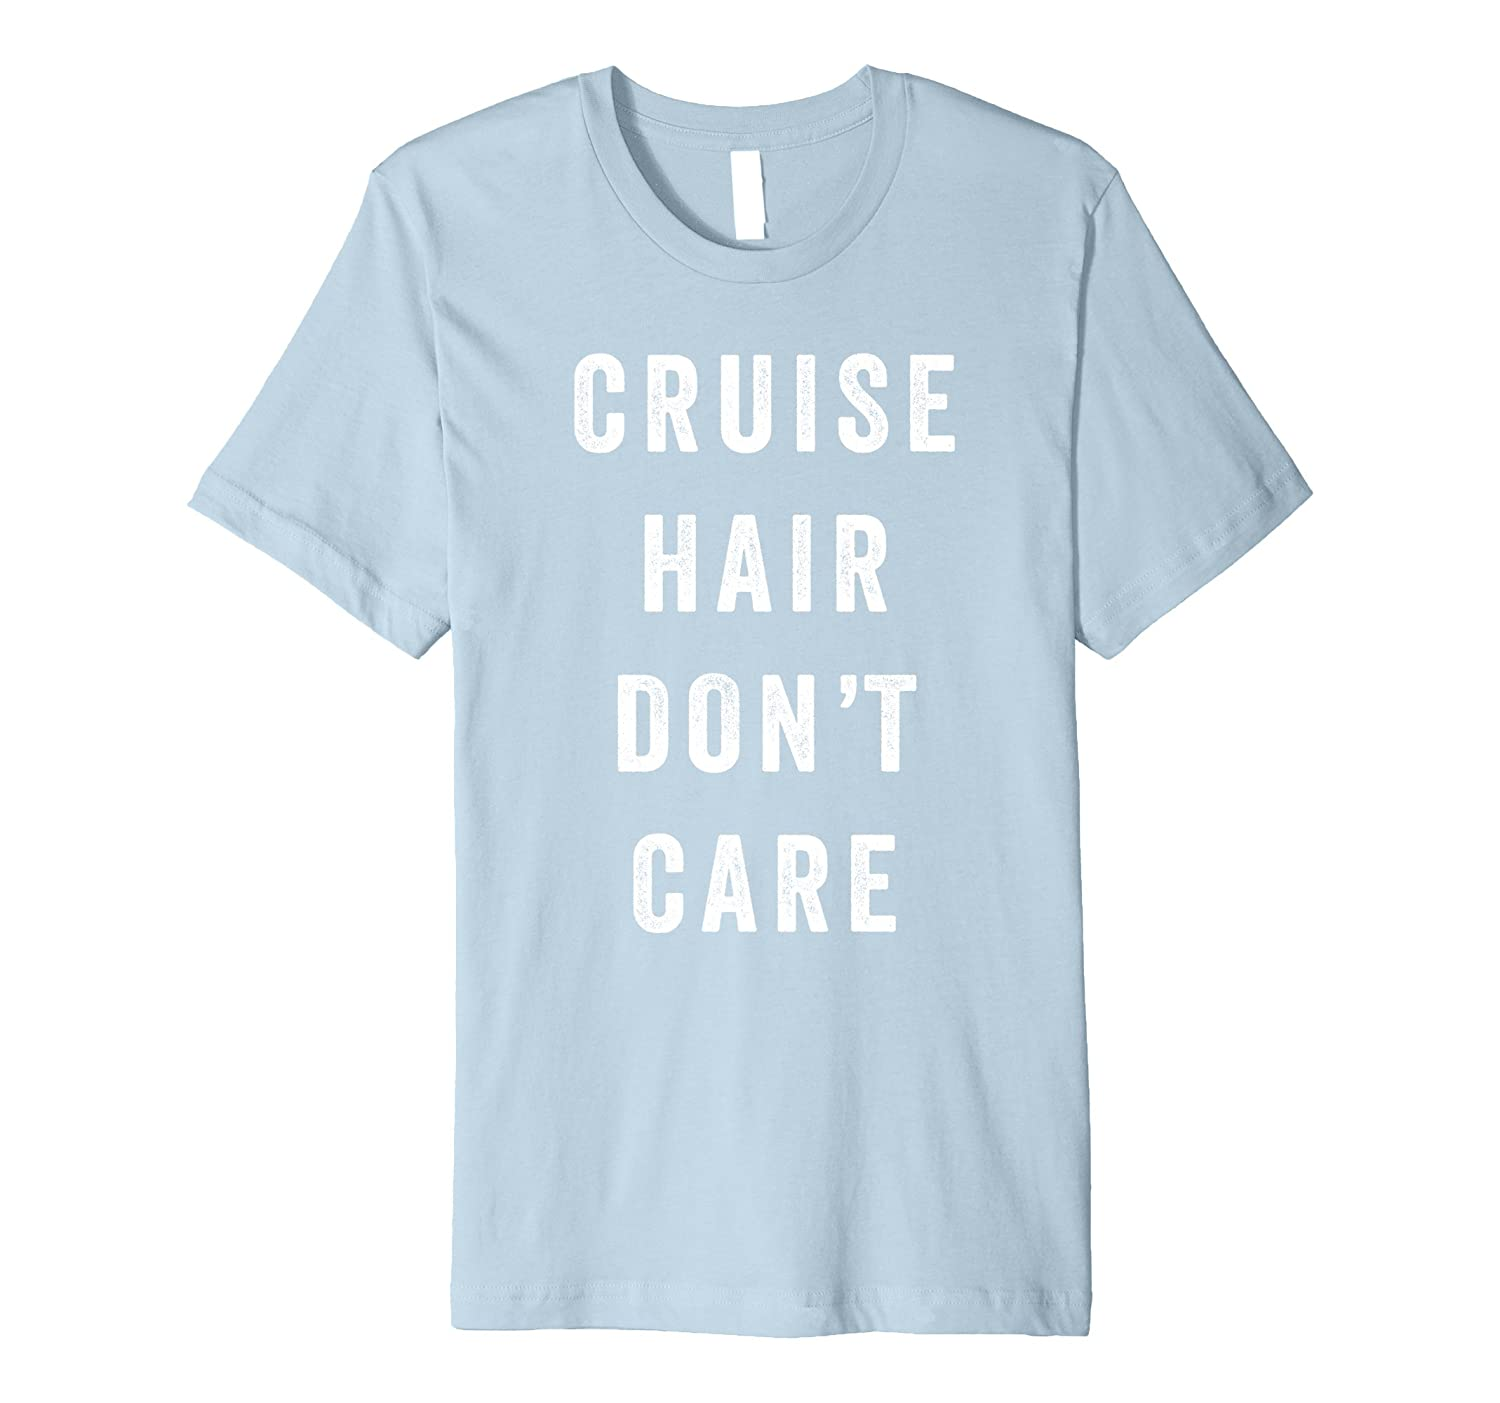 Cruise Hair Don't Care Shirt Funny Family Vacation T-Shirt